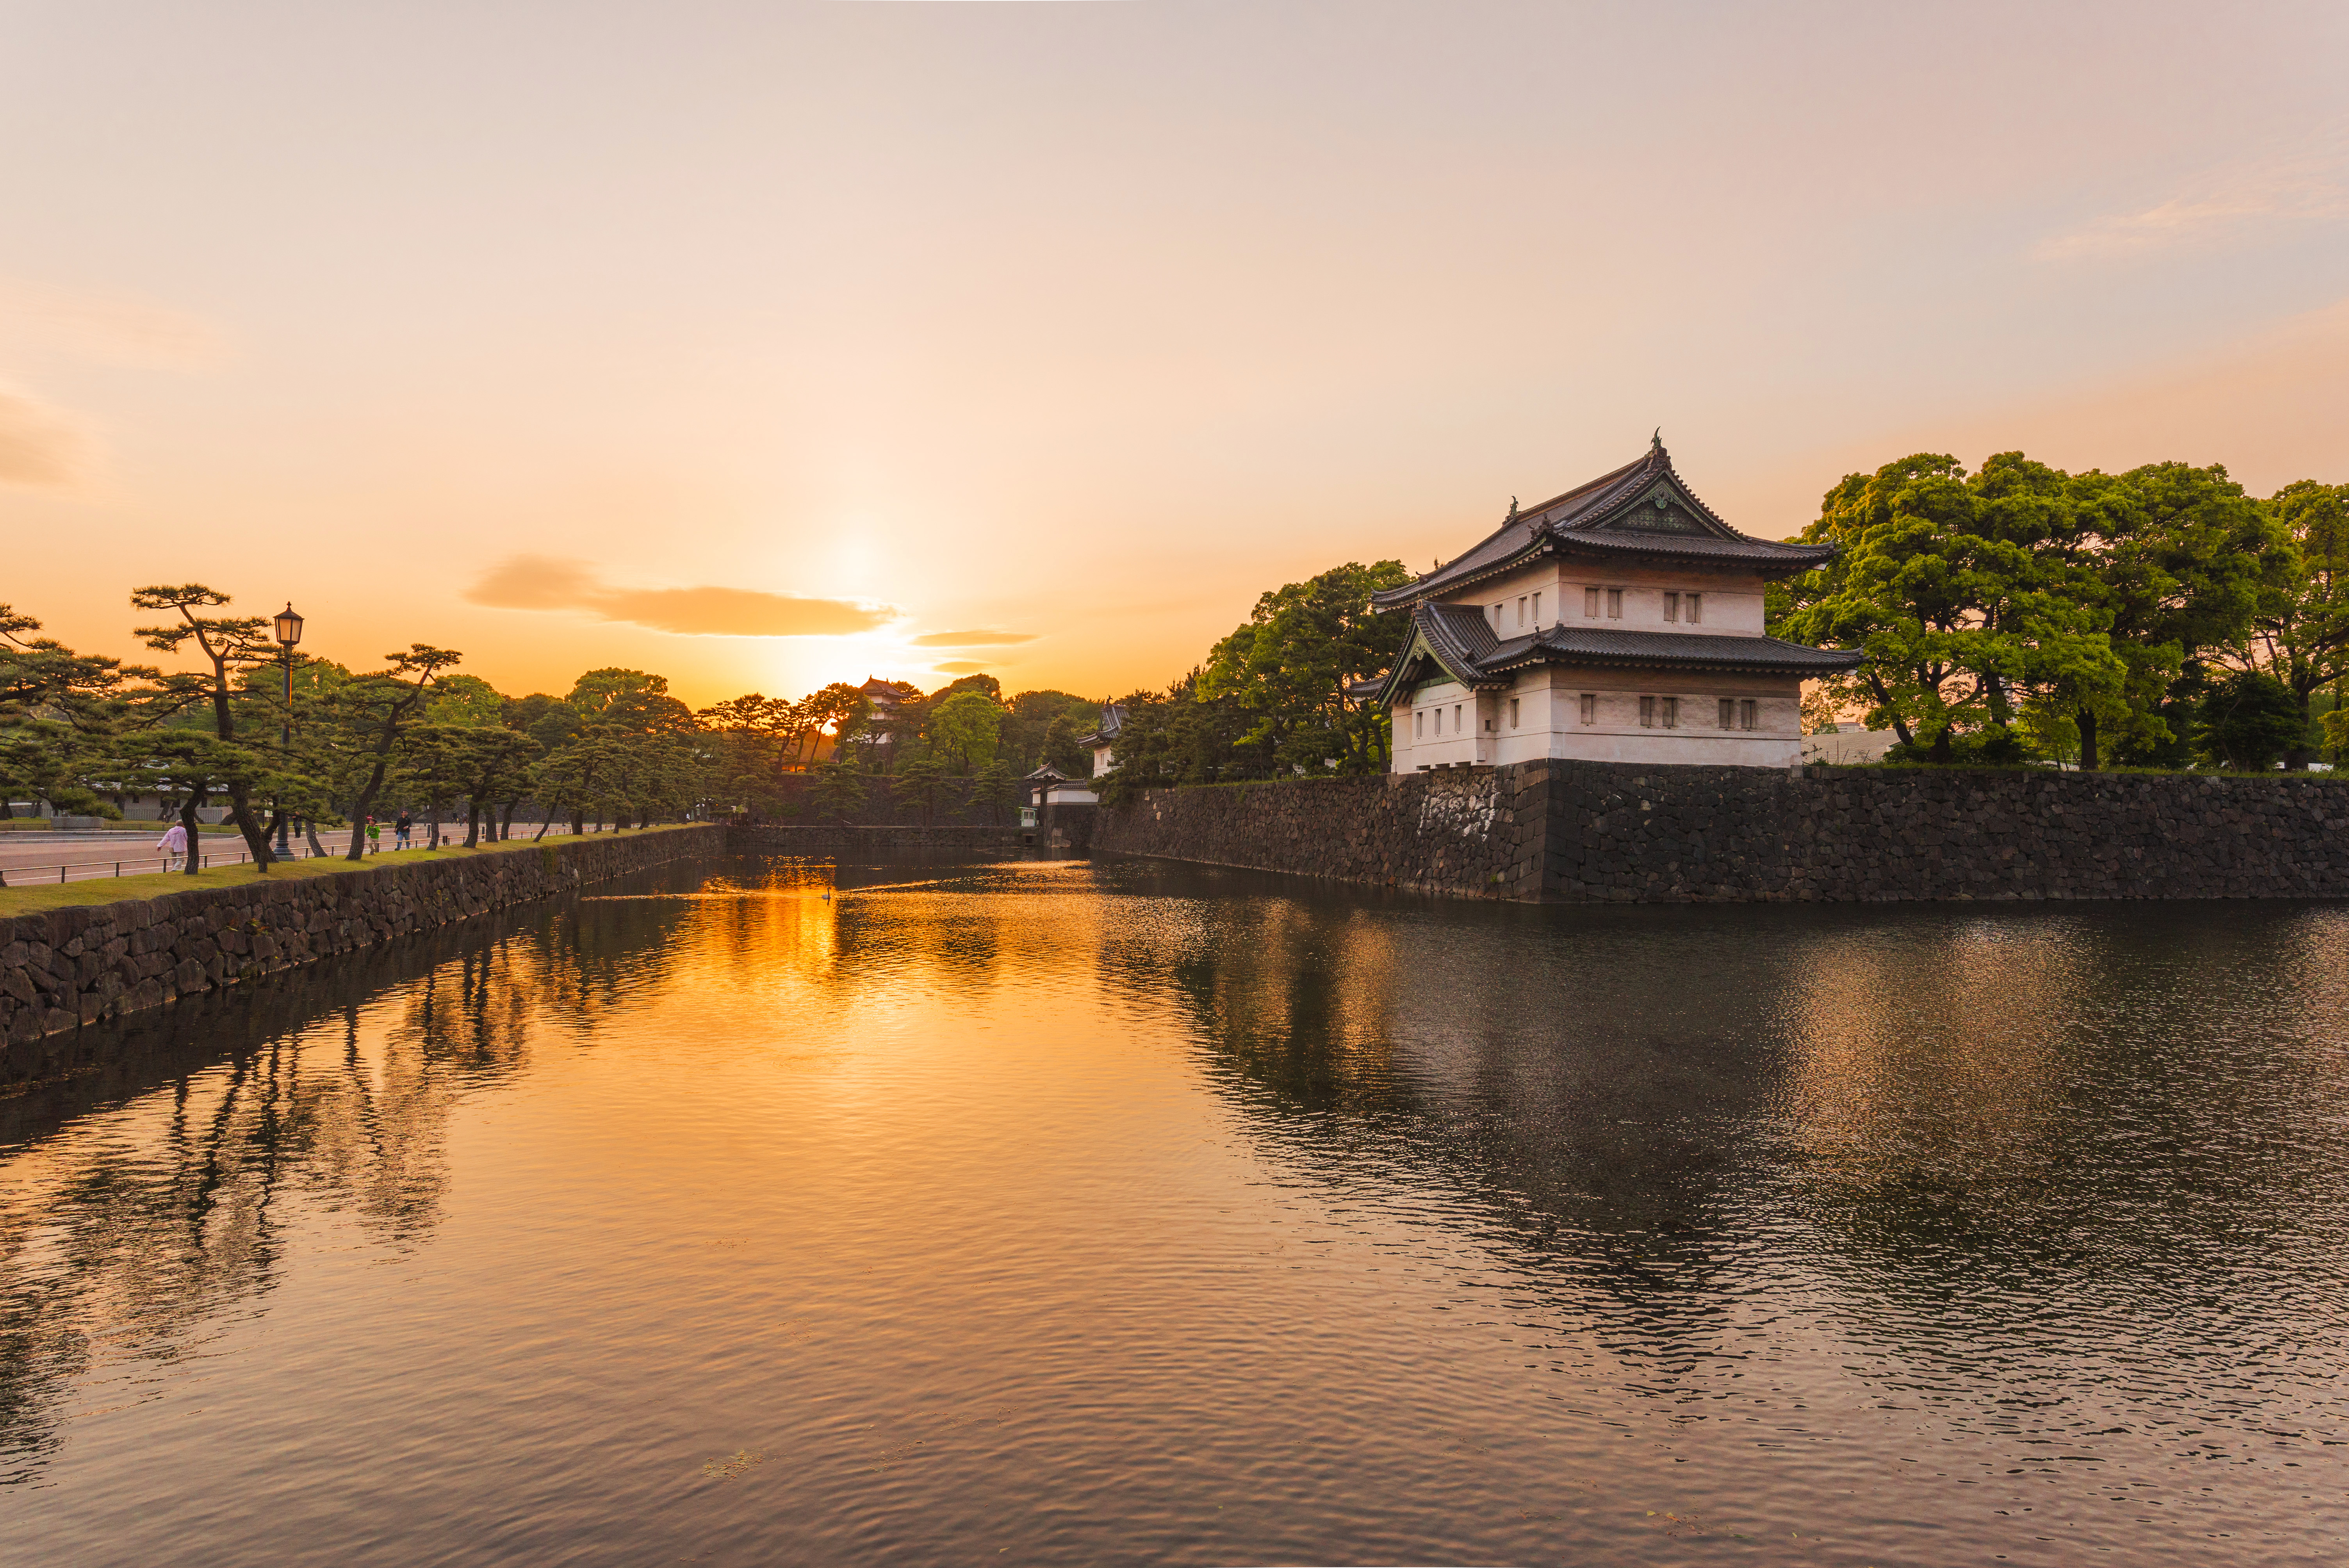 Imperial Residence 5k Retina Ultra HD Wallpaper 6016x4016